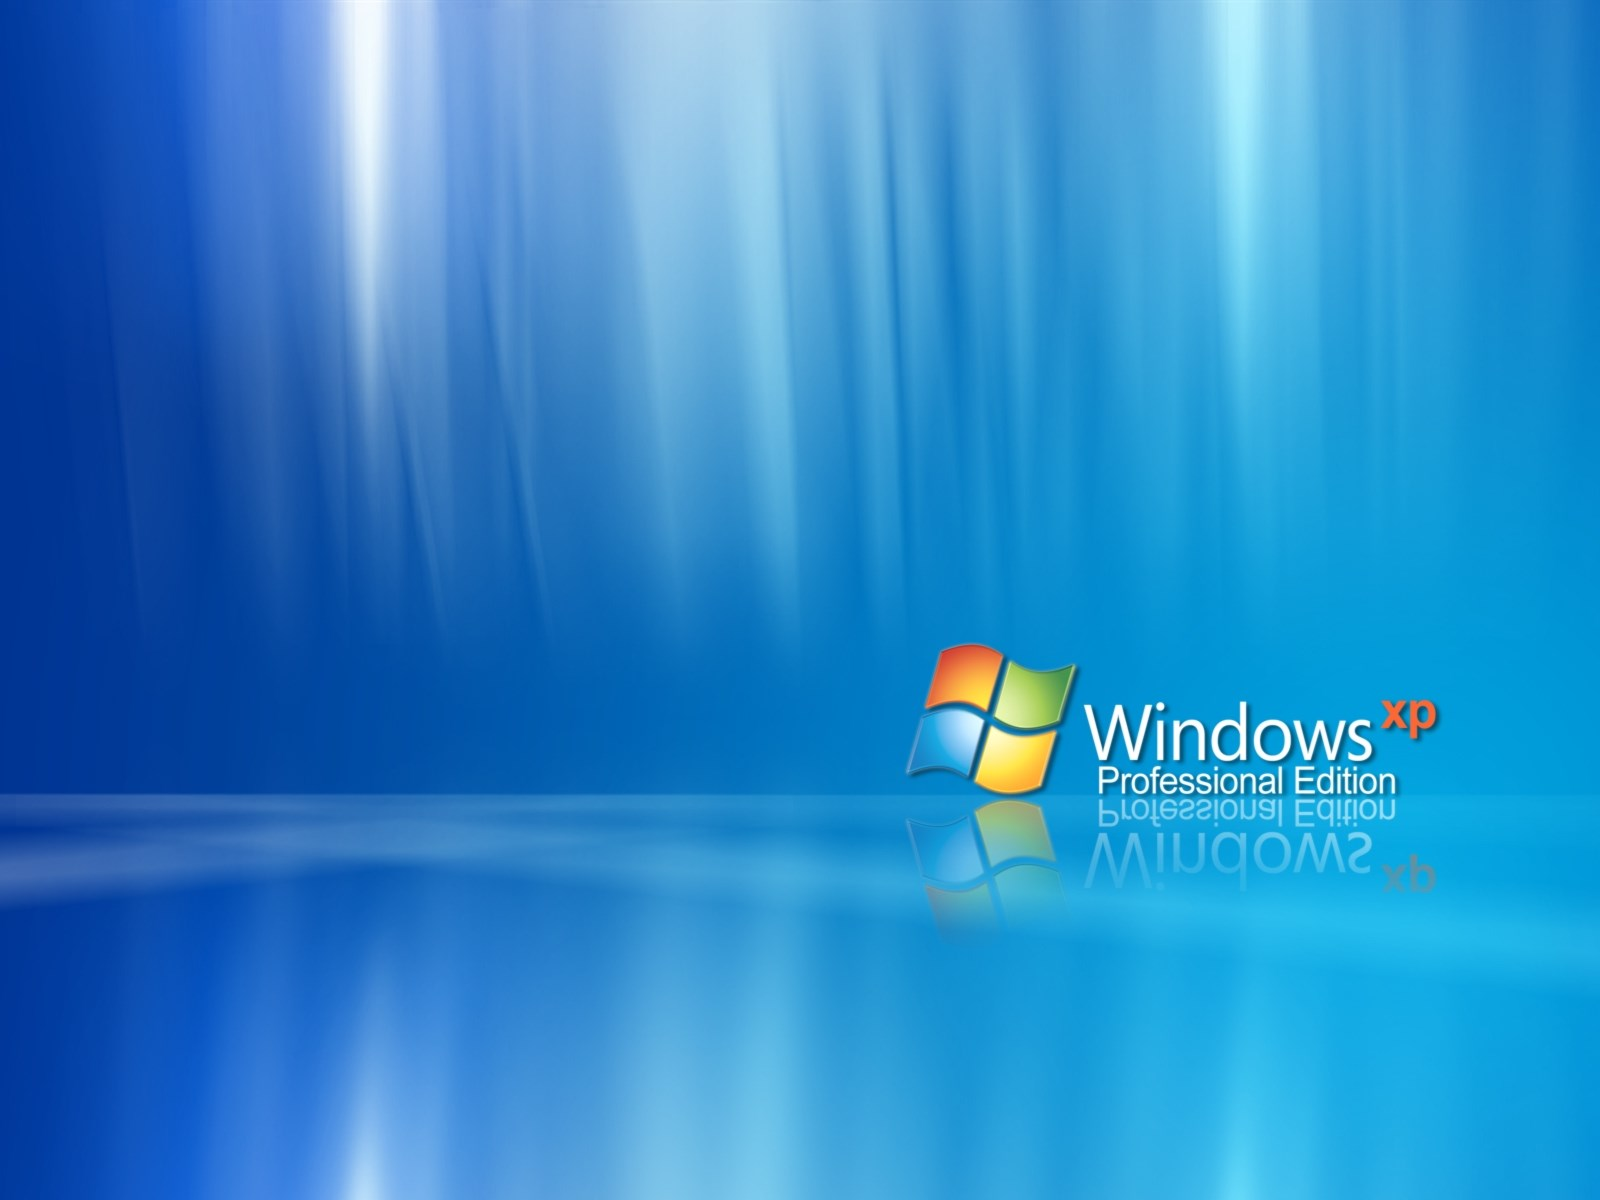 Windows 'God Mode' is being used to hide malware